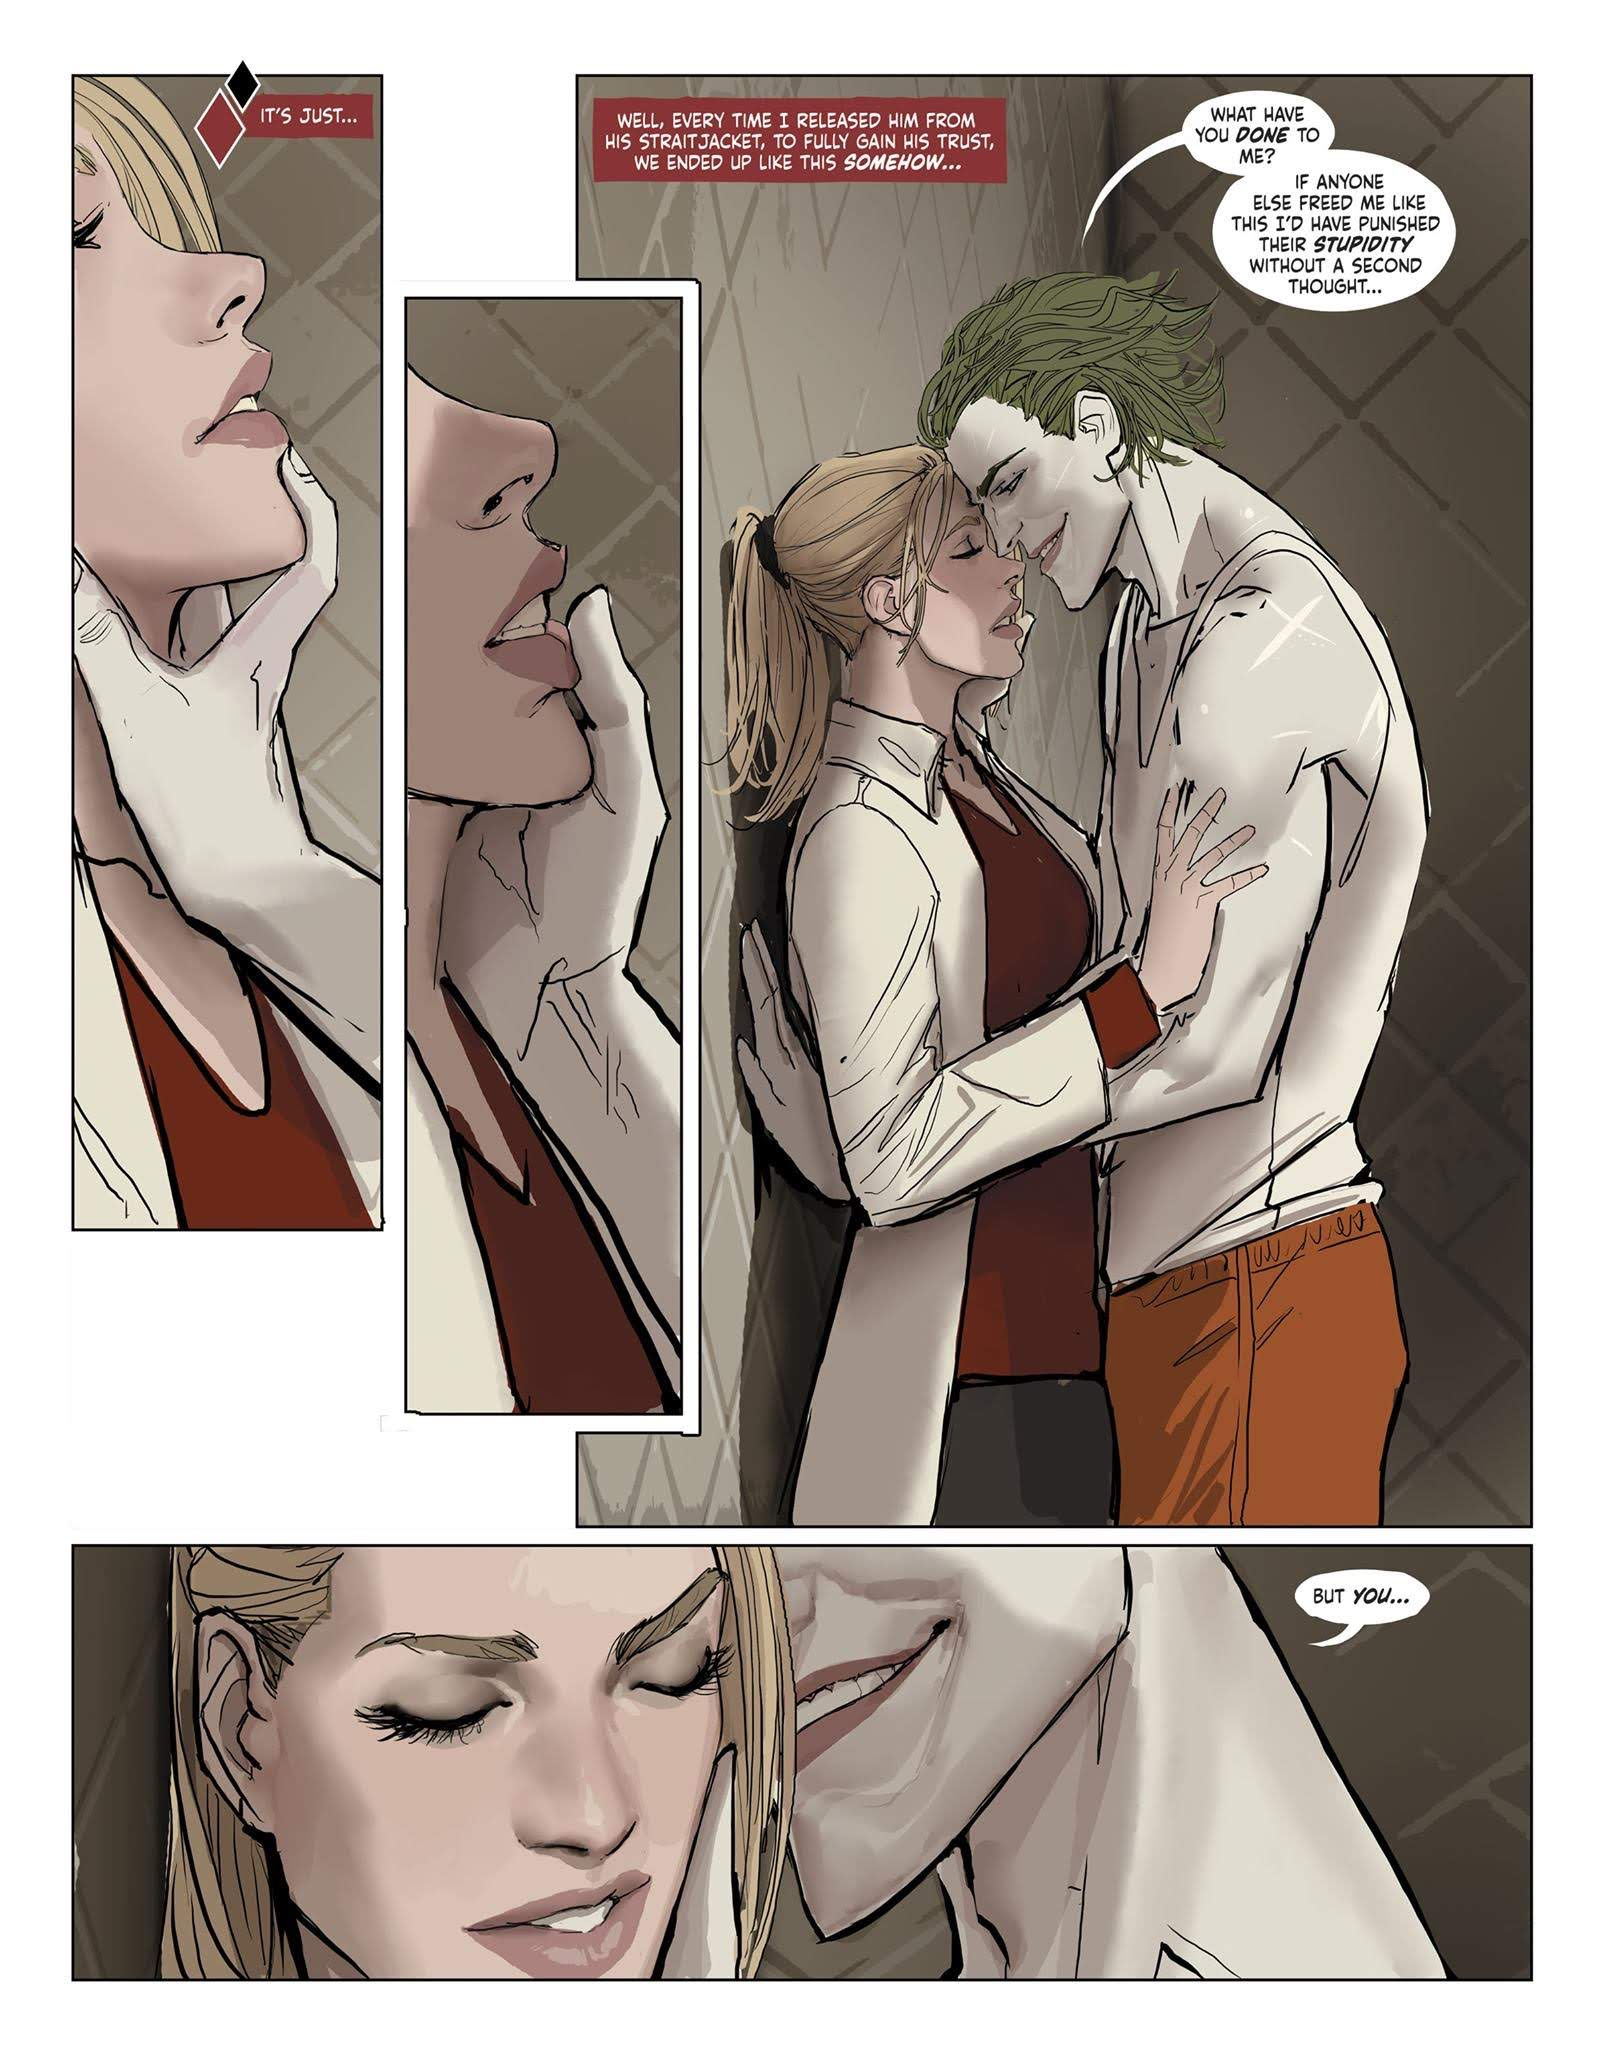 A passionate moment between Joker and Harleen in Harleen #3.